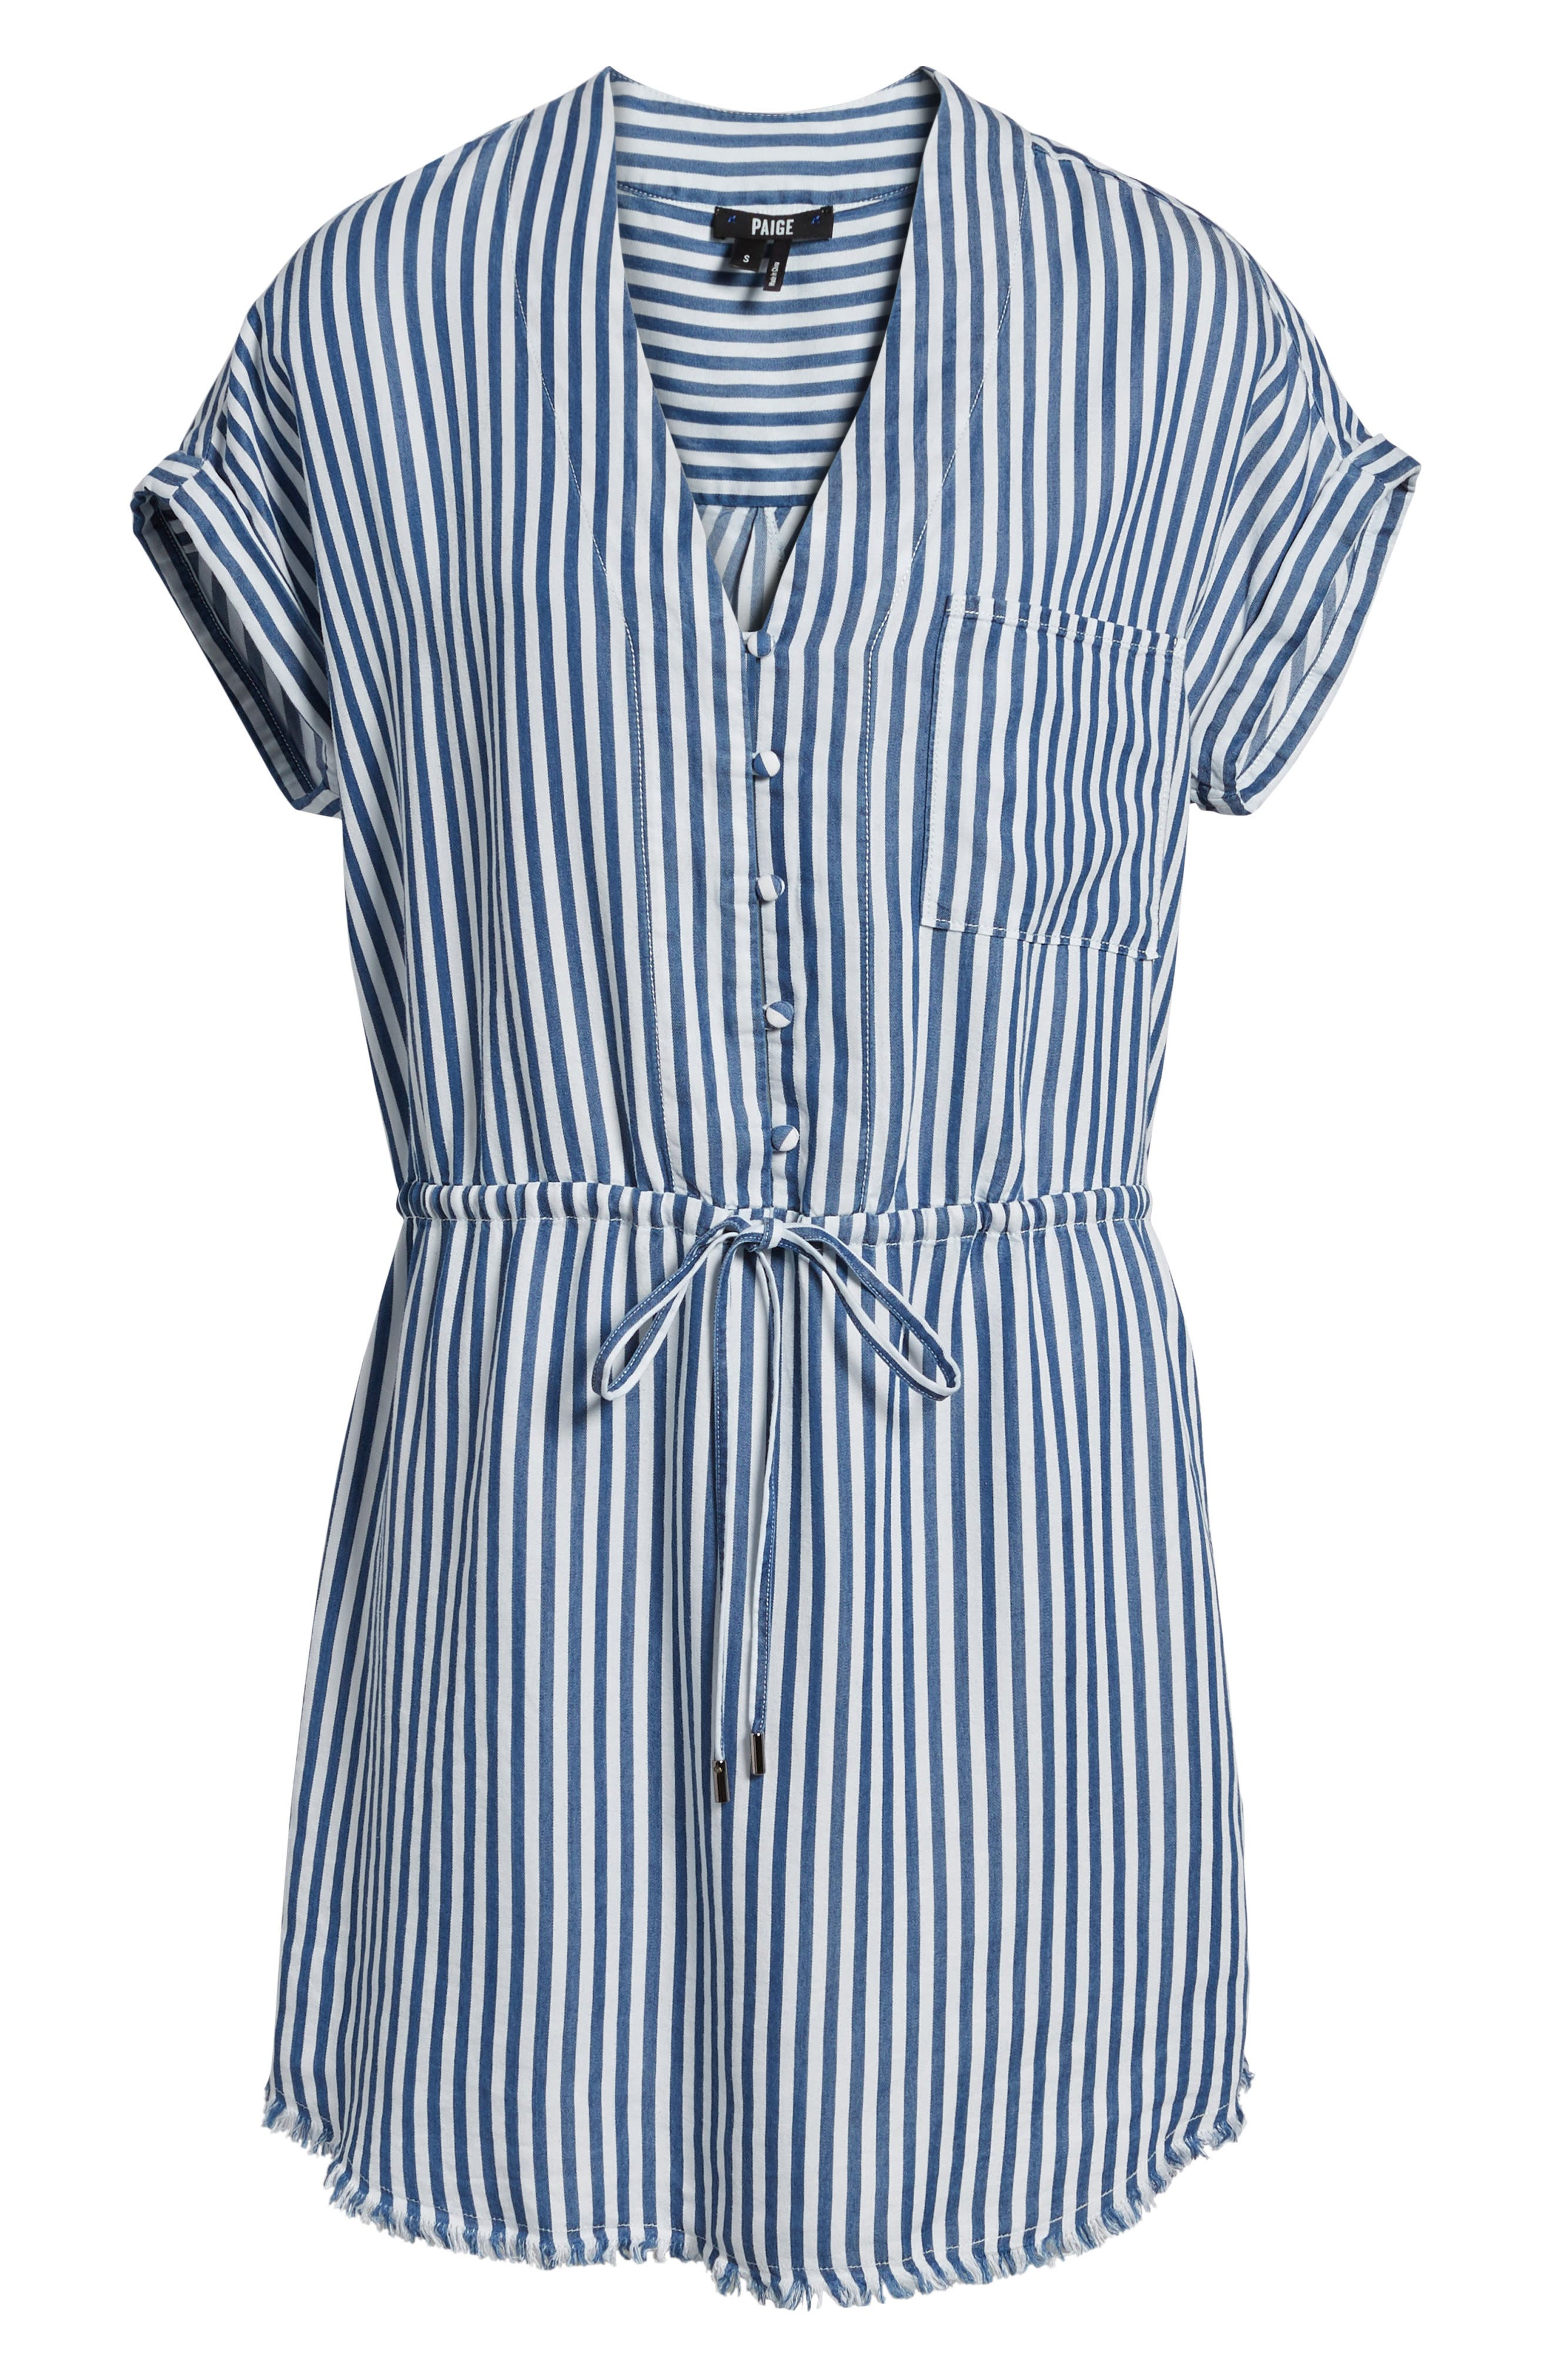 Haidee Stripe Shift Dress,                             Alternate thumbnail 6, color,                             White/ Blue Bell Stripe